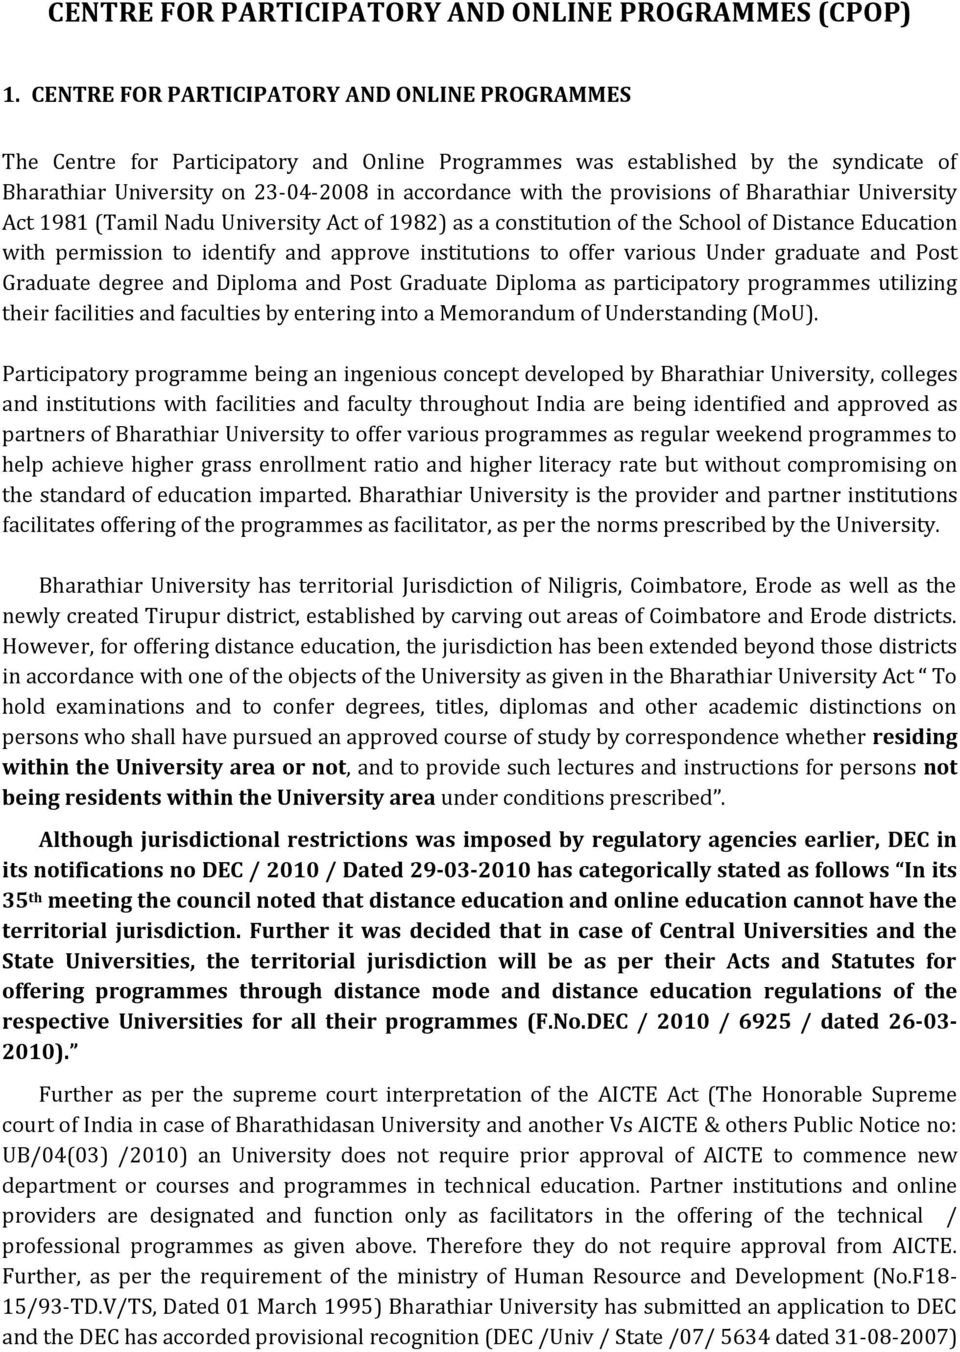 provisions of Bharathiar University Act 1981 (Tamil Nadu University Act of 1982) as a constitution of the School of Distance Education with permission to identify and approve institutions to offer